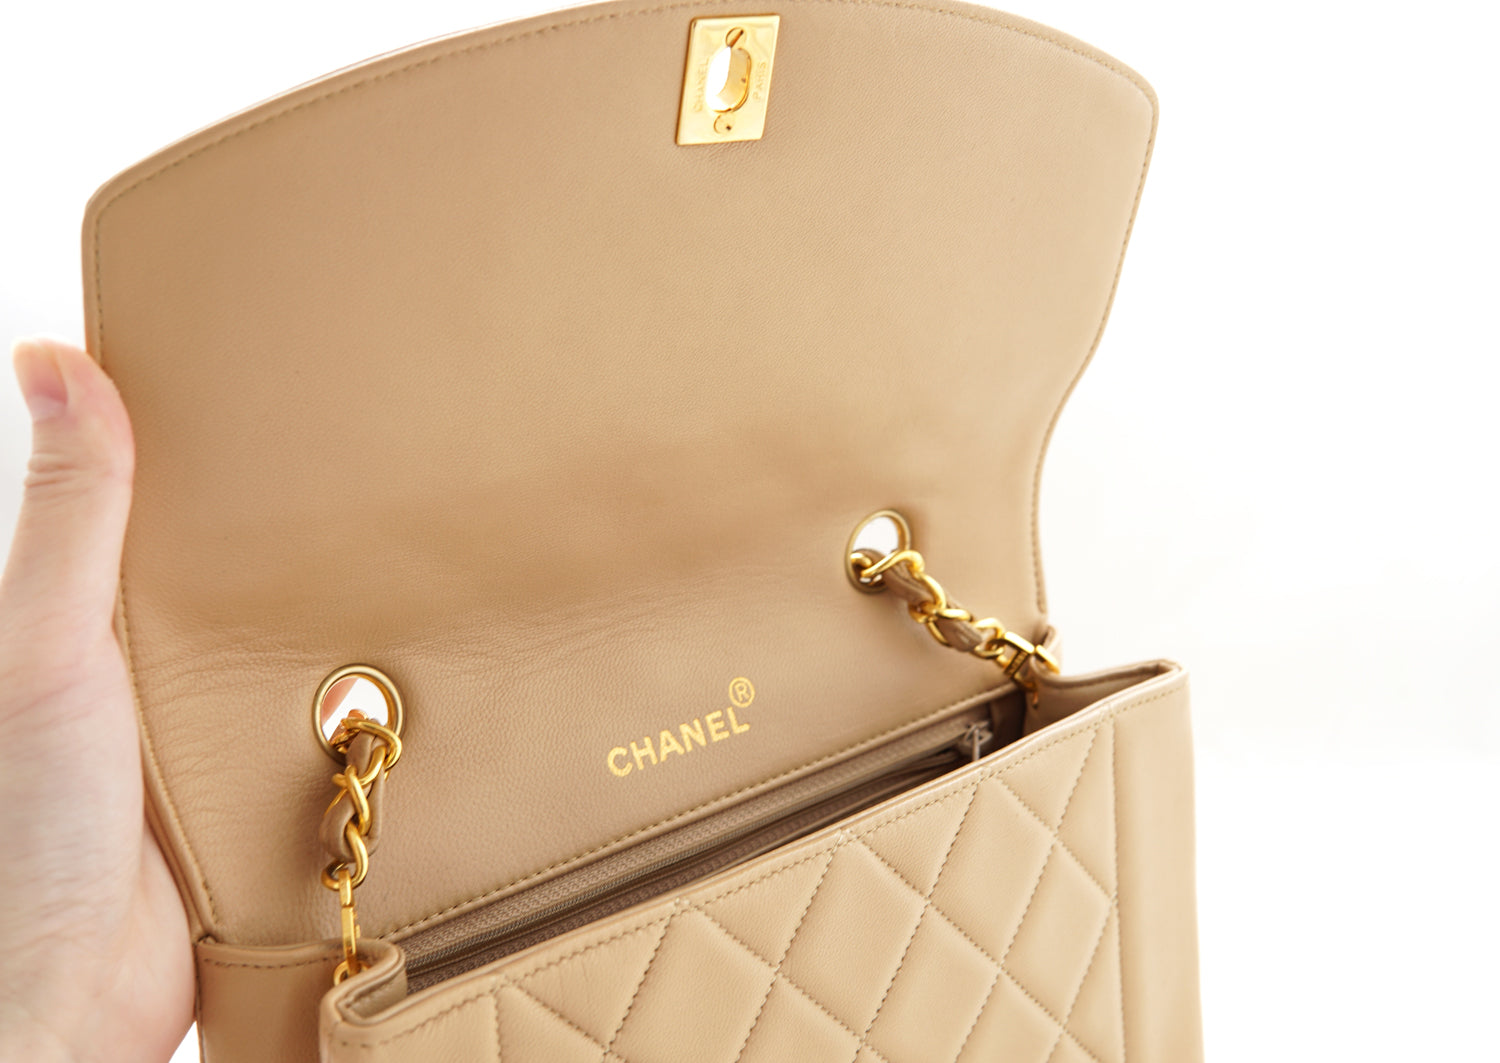 2b9e801efea6 CHANEL VINTAGE DIANA FLAP BAG - Quilted Lambskin in Beige